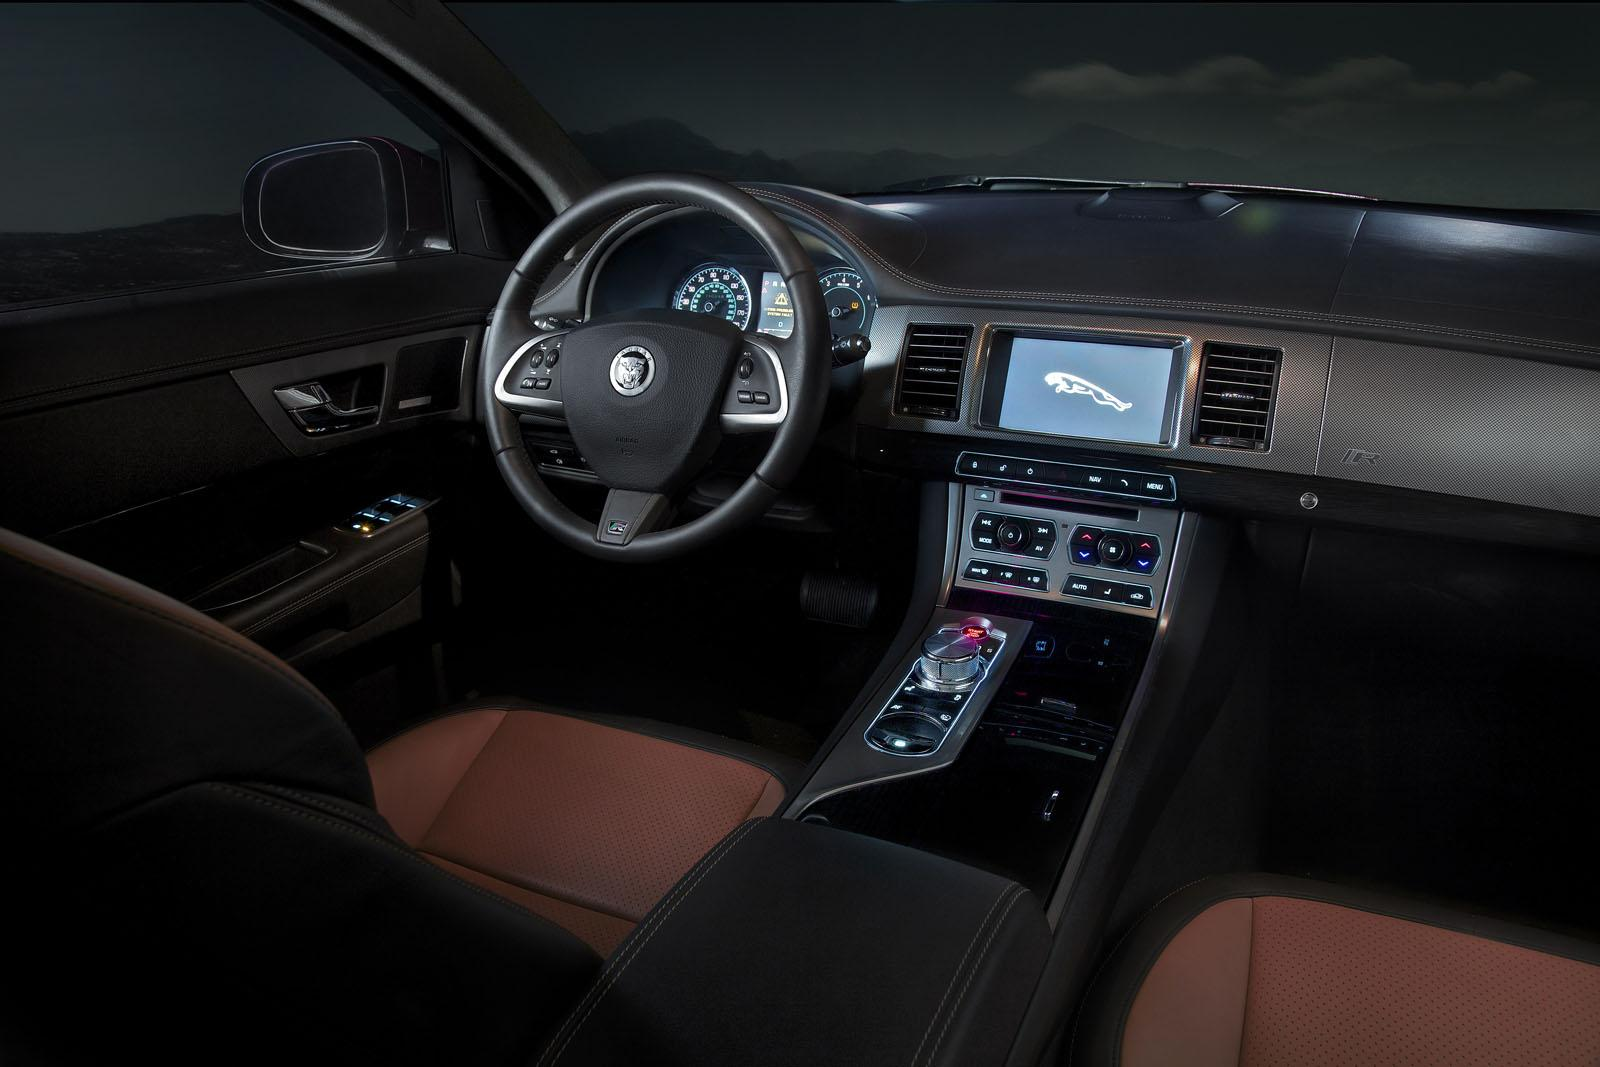 2012 Jaguar XF interior